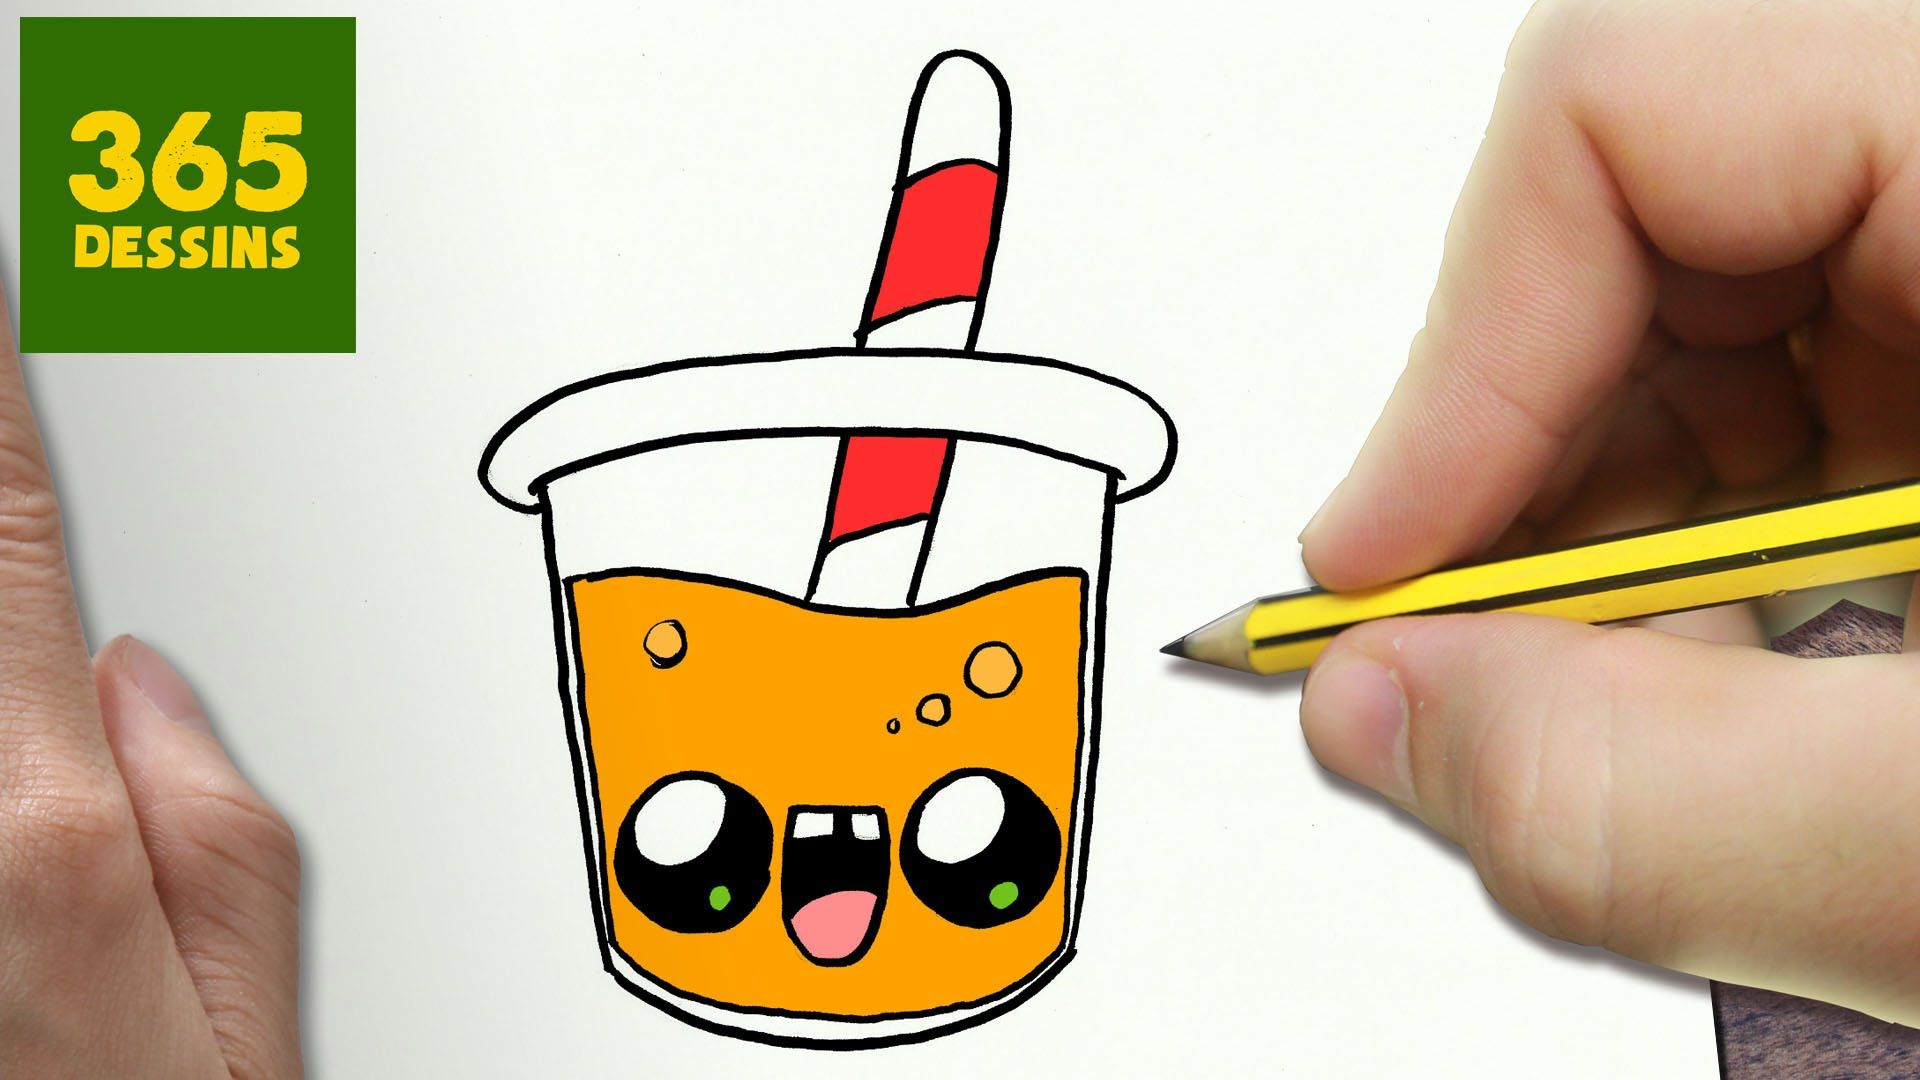 Kawaii dessin kawaii pinterest kawaii dessins for Decoration cuisine kawaii